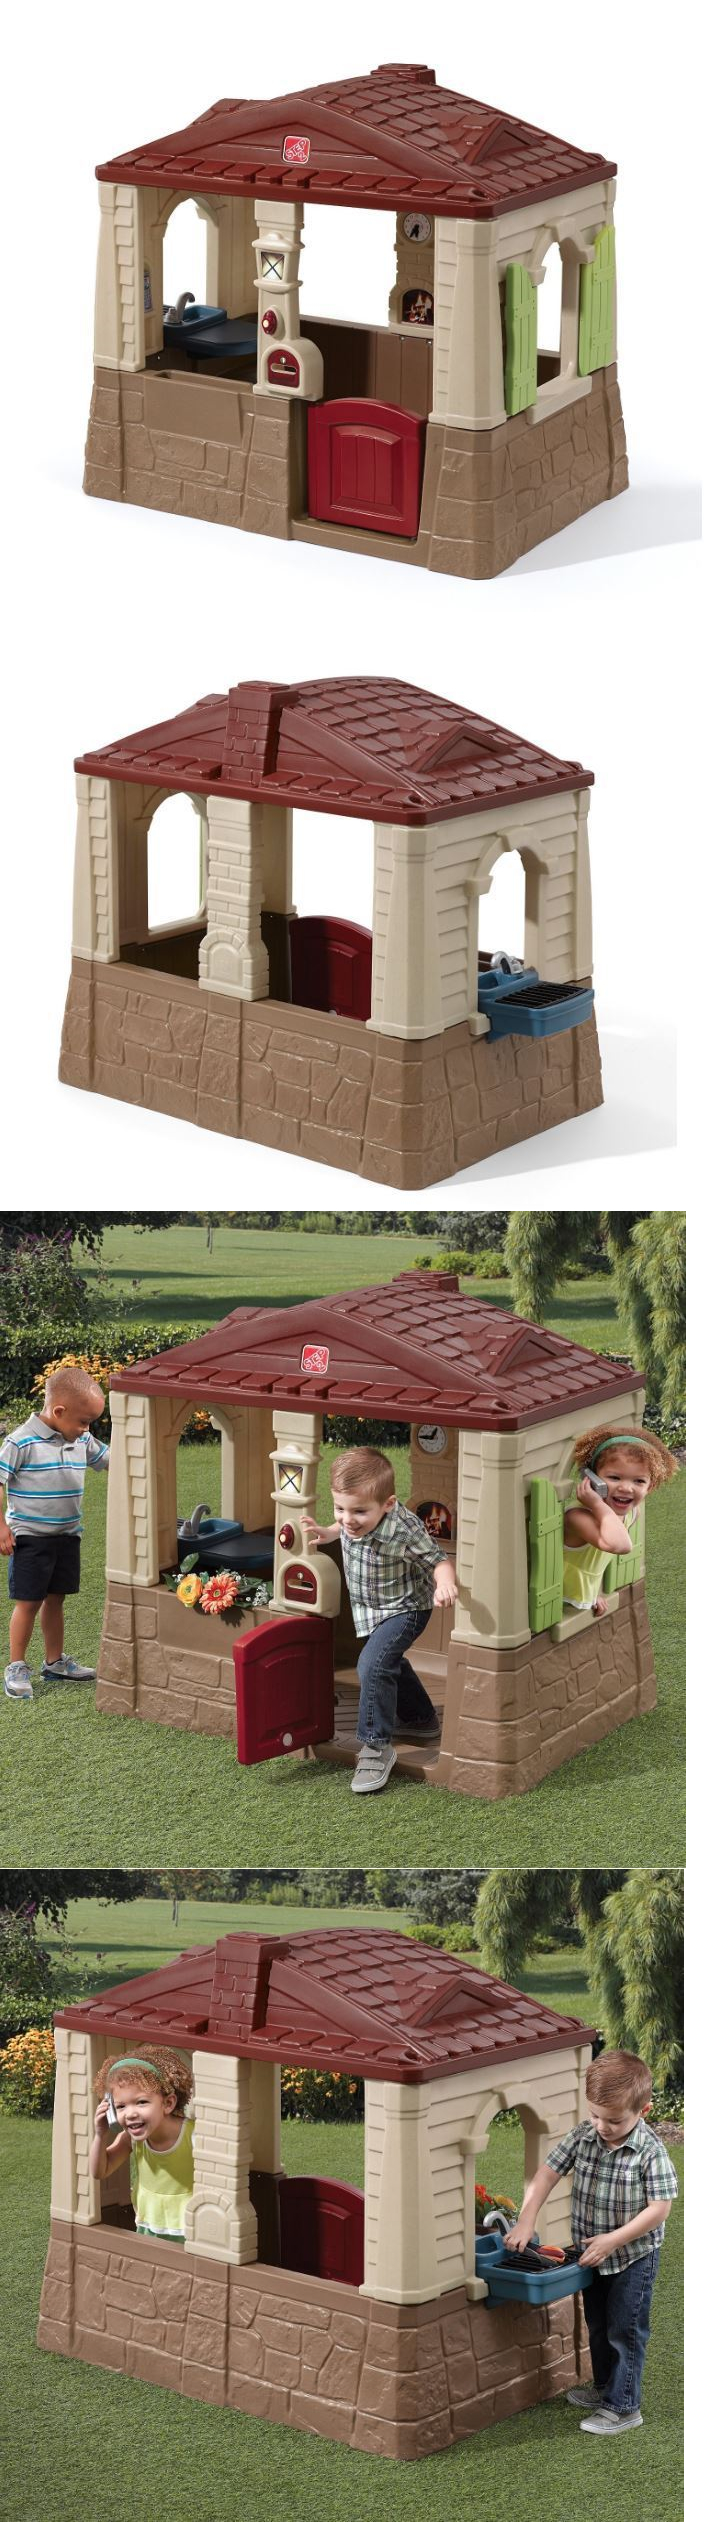 step 2 52344 outdoor playhouse for boys kids step 2 cottage house